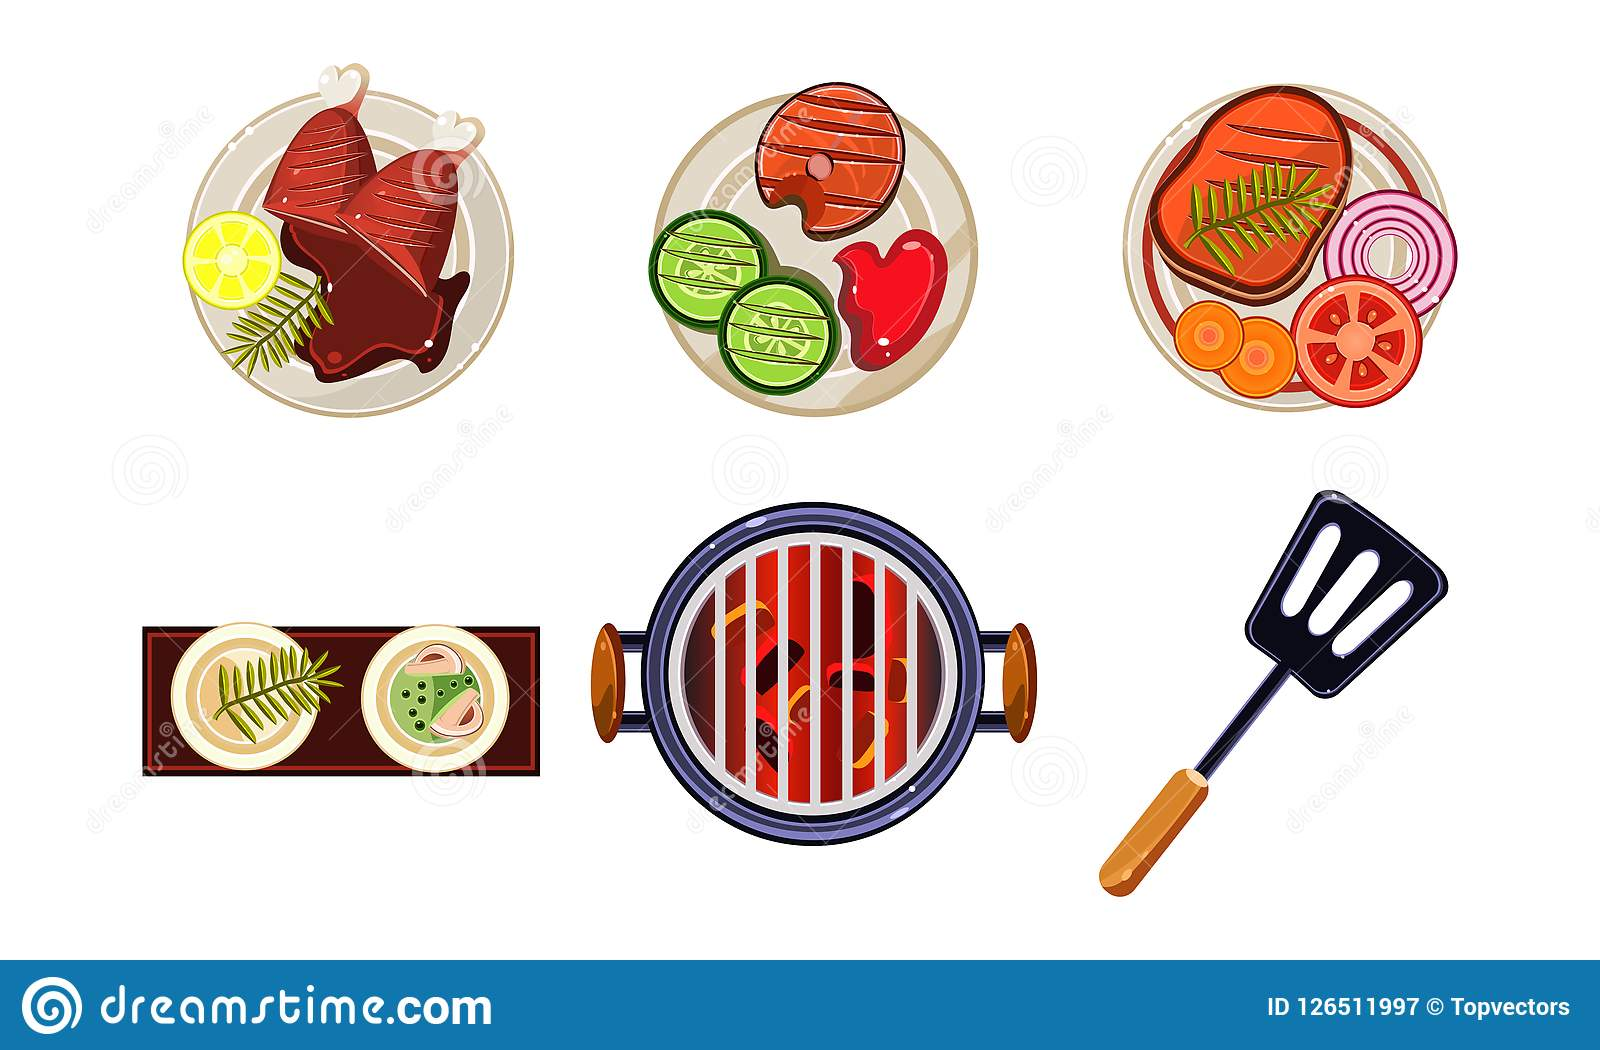 Meat and fish dishes cooked on the grill, tasty healthy food, top view vector Illustration on a white background